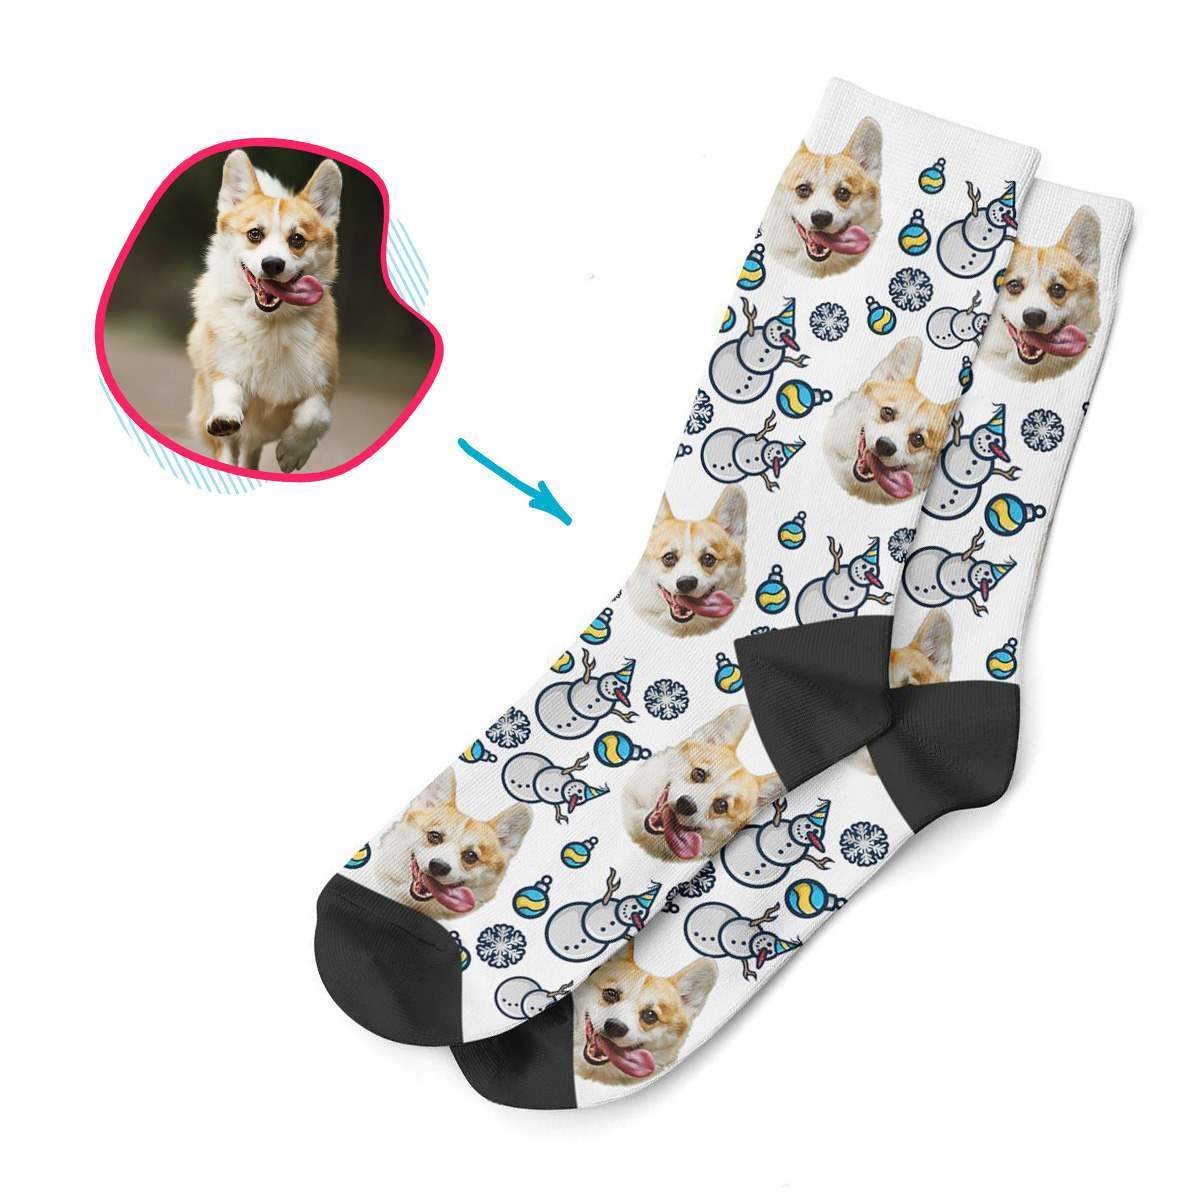 white Snowman socks personalized with photo of face printed on them